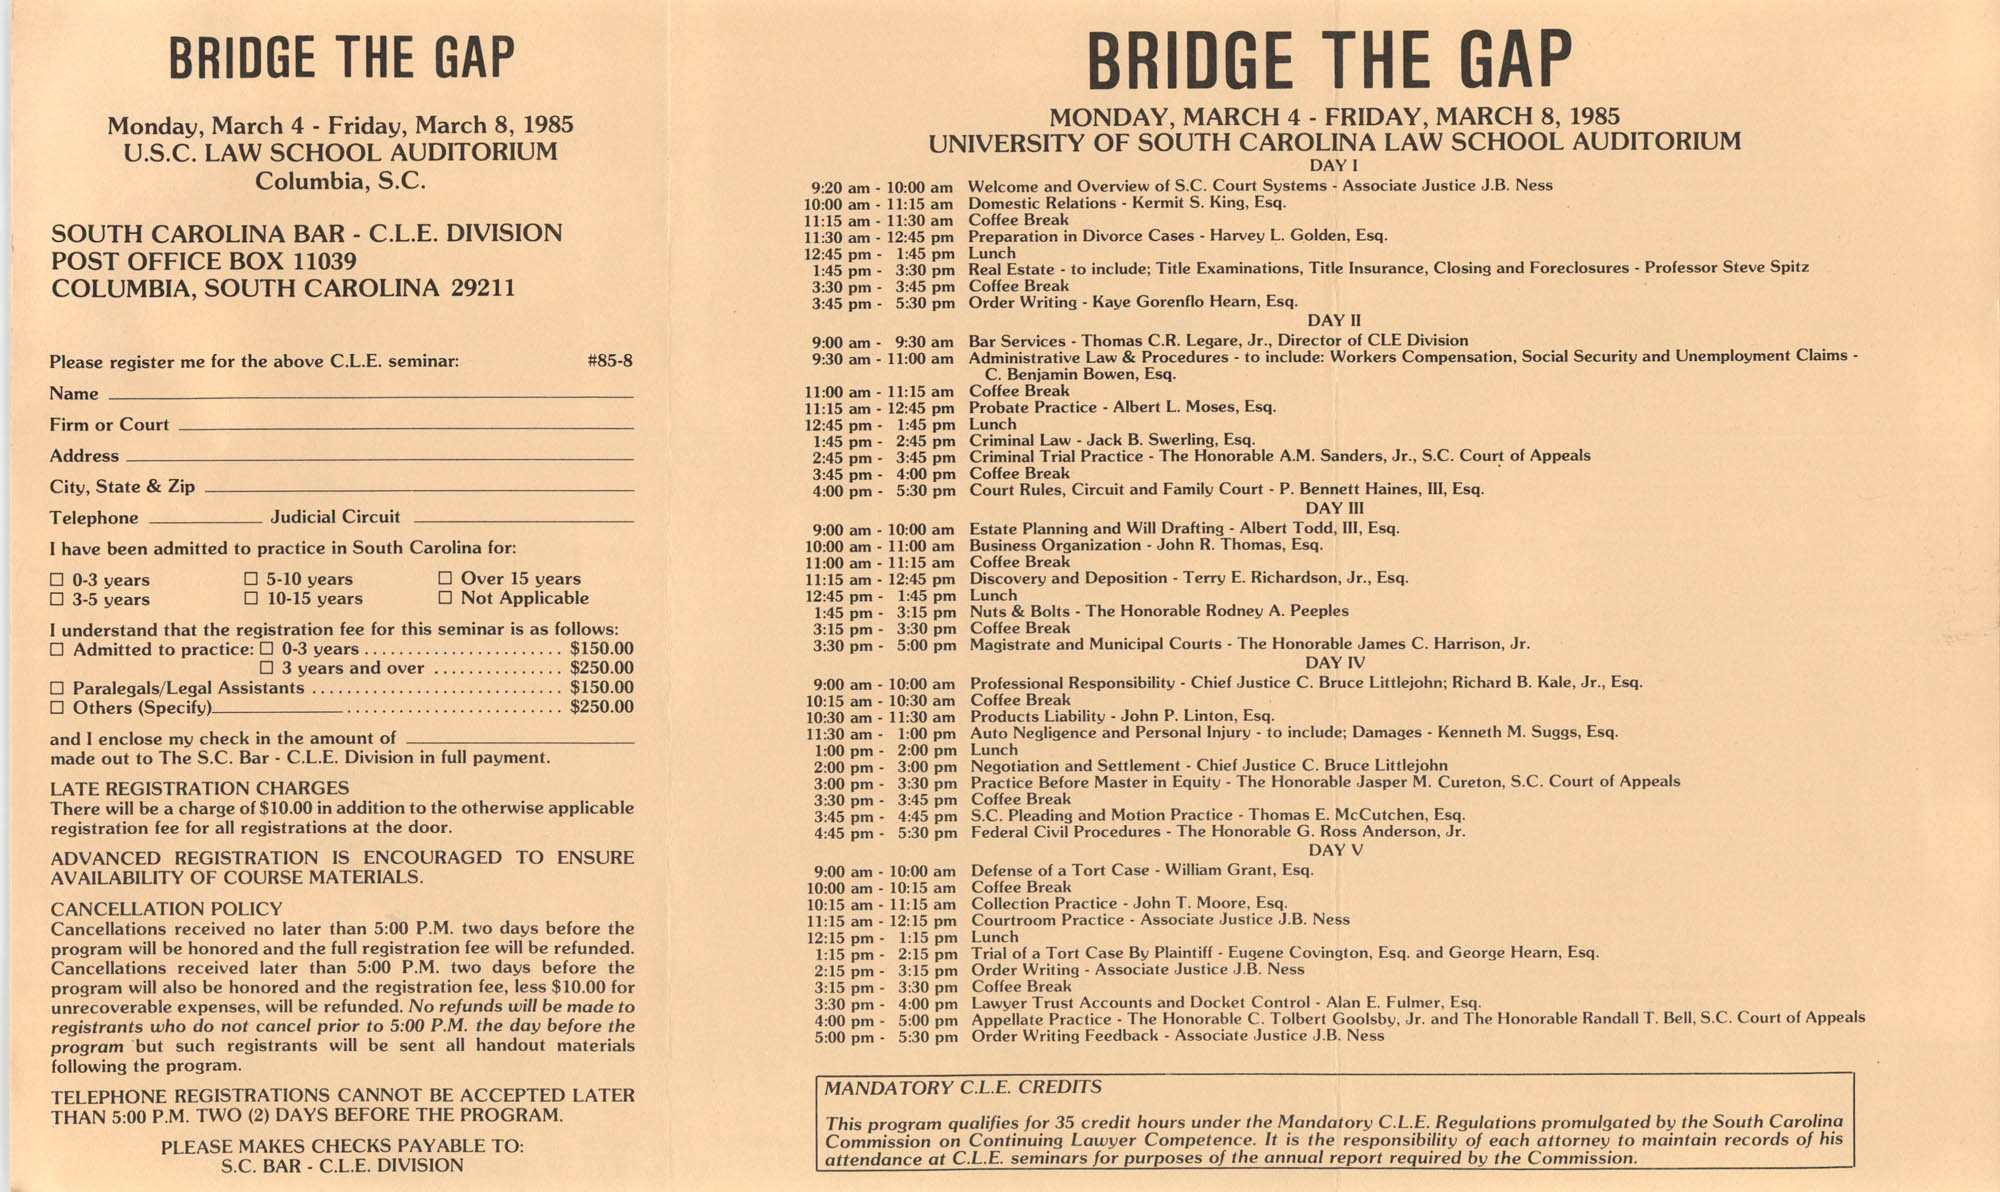 Bridge the Gap, Continuing Legal Education Seminar Pamphlet, March 4-8, 1985